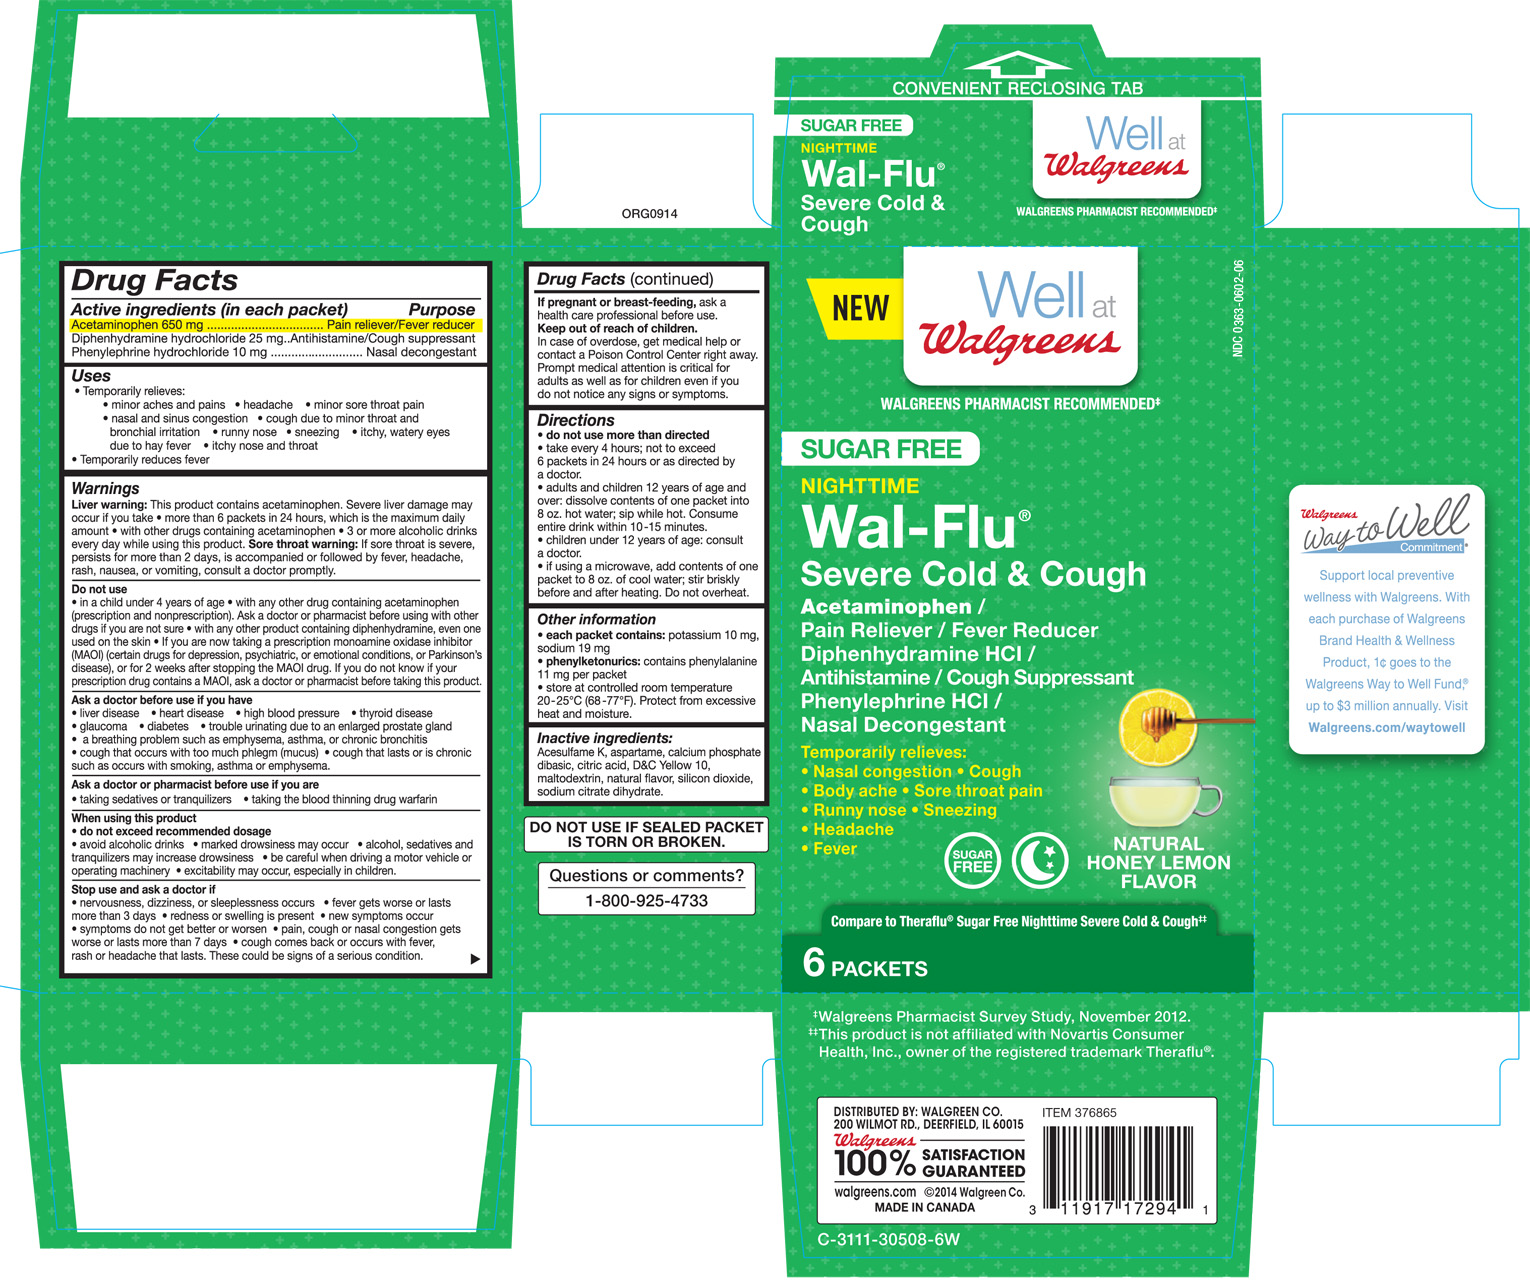 Walgreens Sugar Free Nighttime Wal-flu Severe Cold And Cough Natural Honey Lemon Flavor (Acetaminophen, Diphenhydramine Hcl, And Phenylephrine Hcl.) Granule, For Solution [Walgreen Co.]